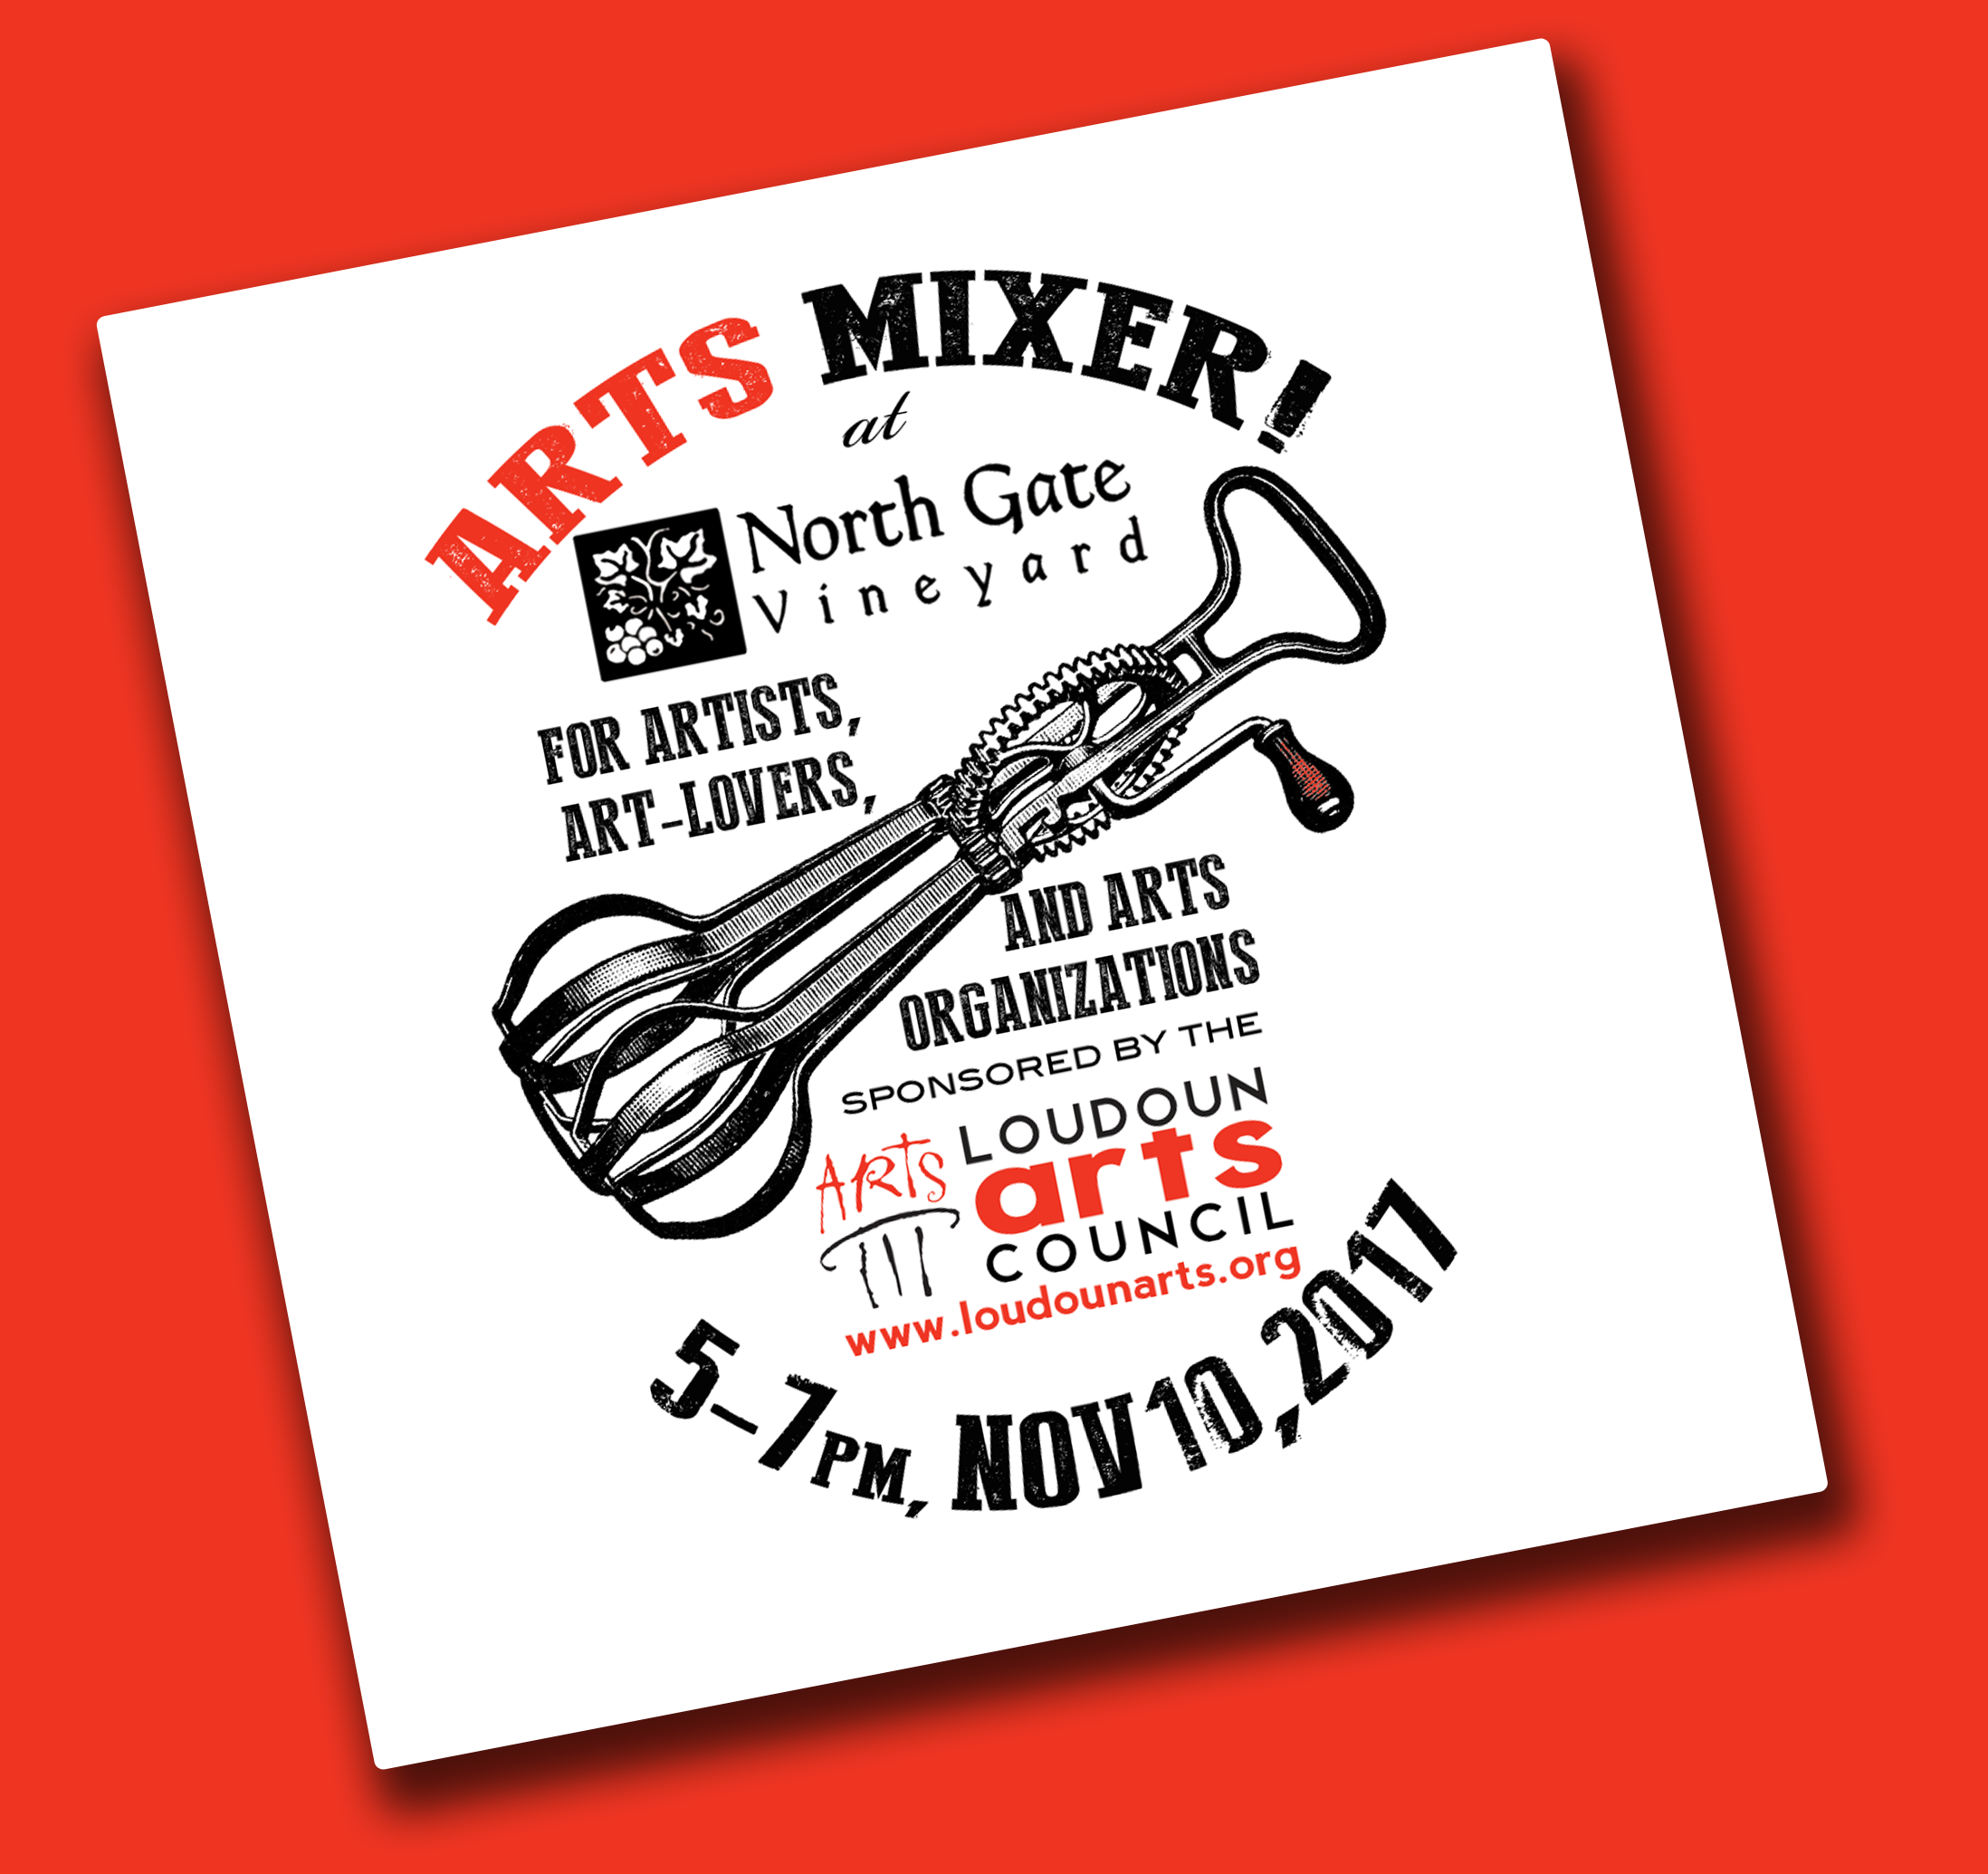 The first LAC Arts Mixer will be at North Gate Vineyard on November 10th